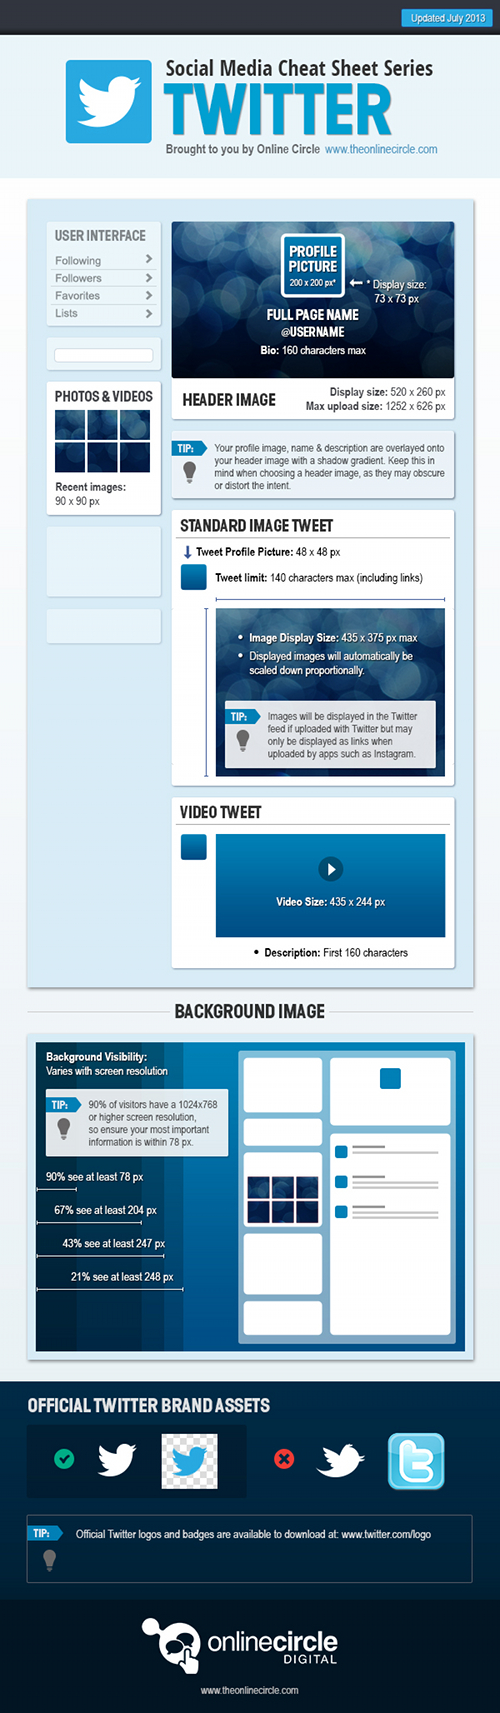 guide-visuel-dimensions-images-twitter